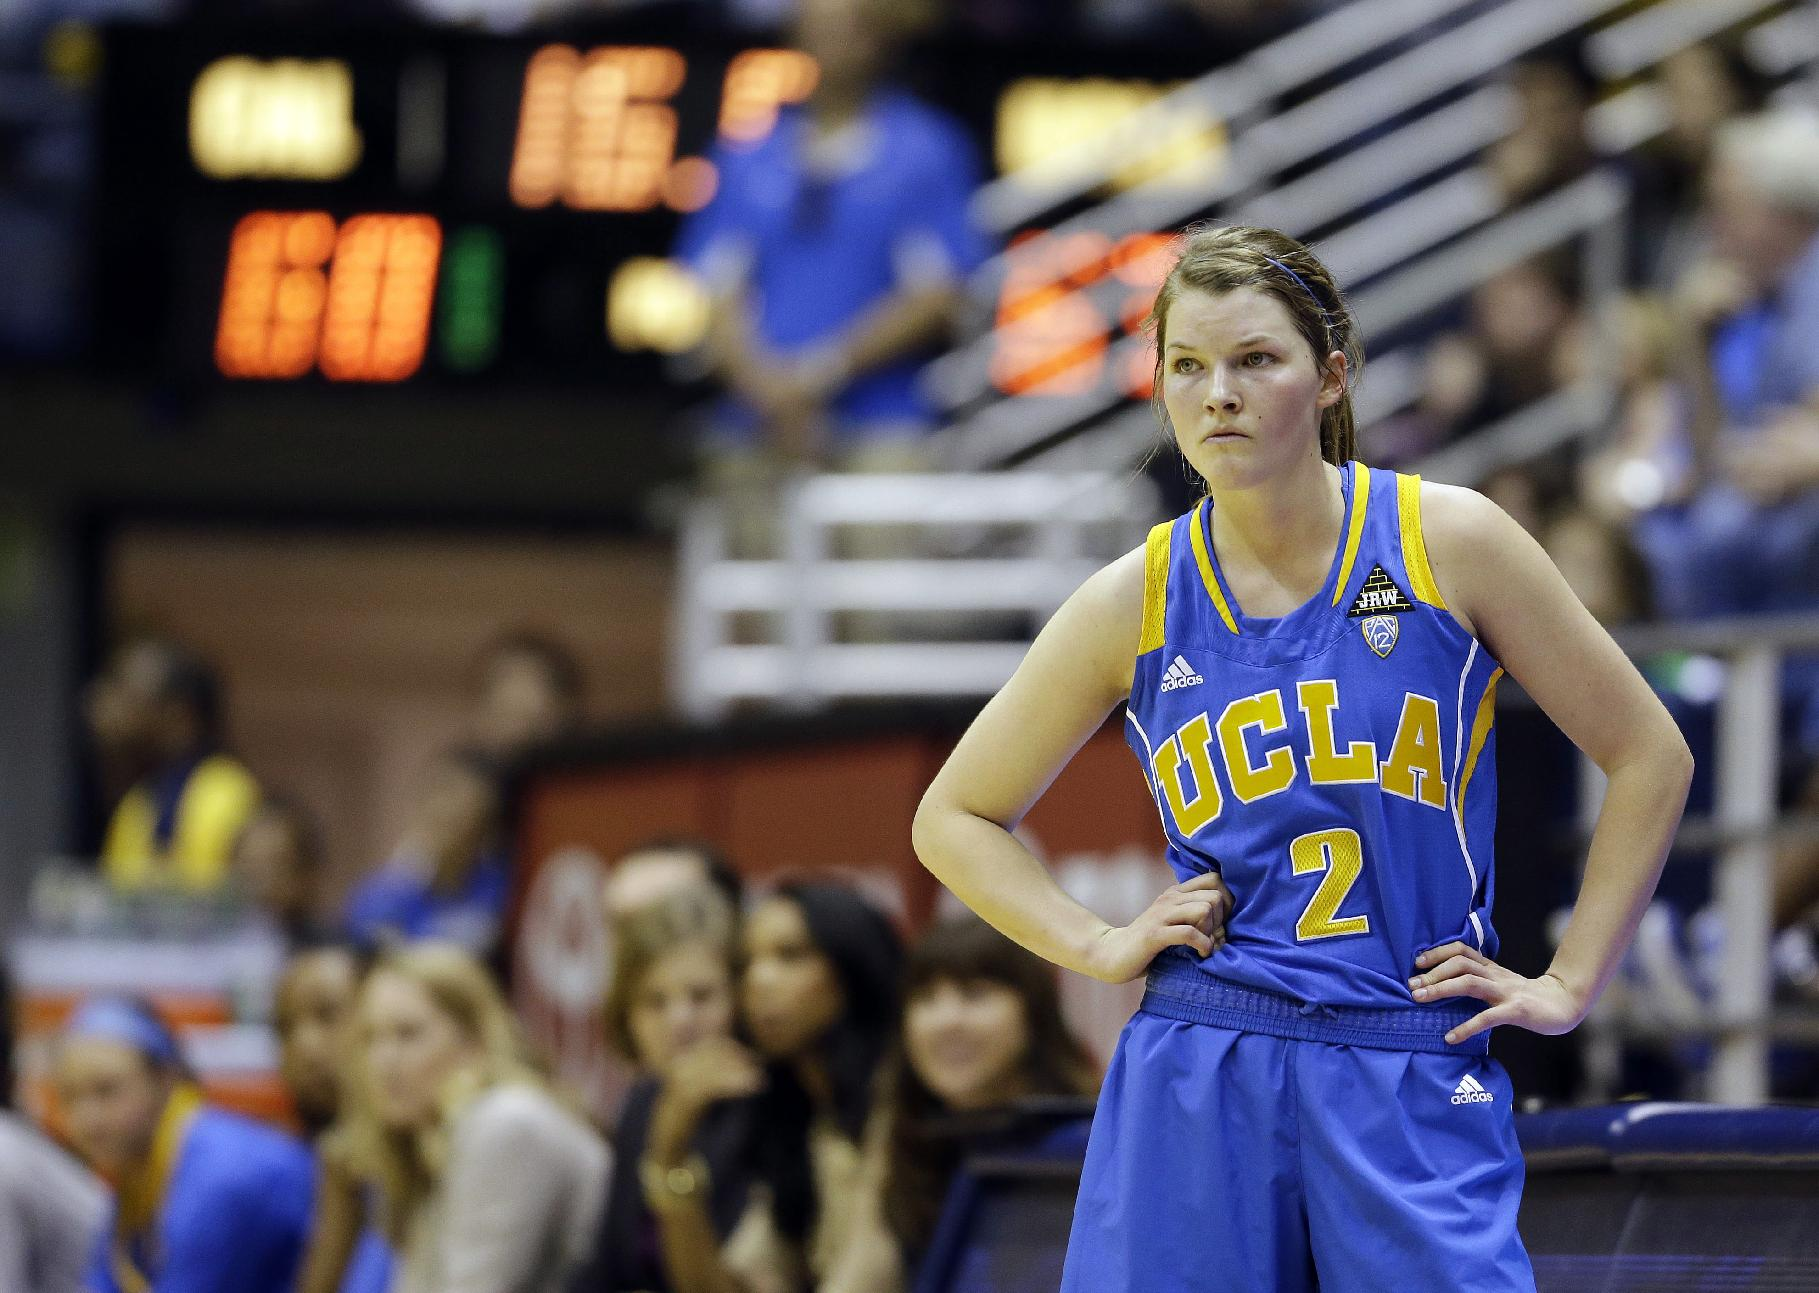 UCLA guard Kari Korver watches from the sidelines in the closing seconds of their NCAA college basketball game against California, Sunday, Jan. 20, 2013, in Berkeley, Calif. California won 70-65